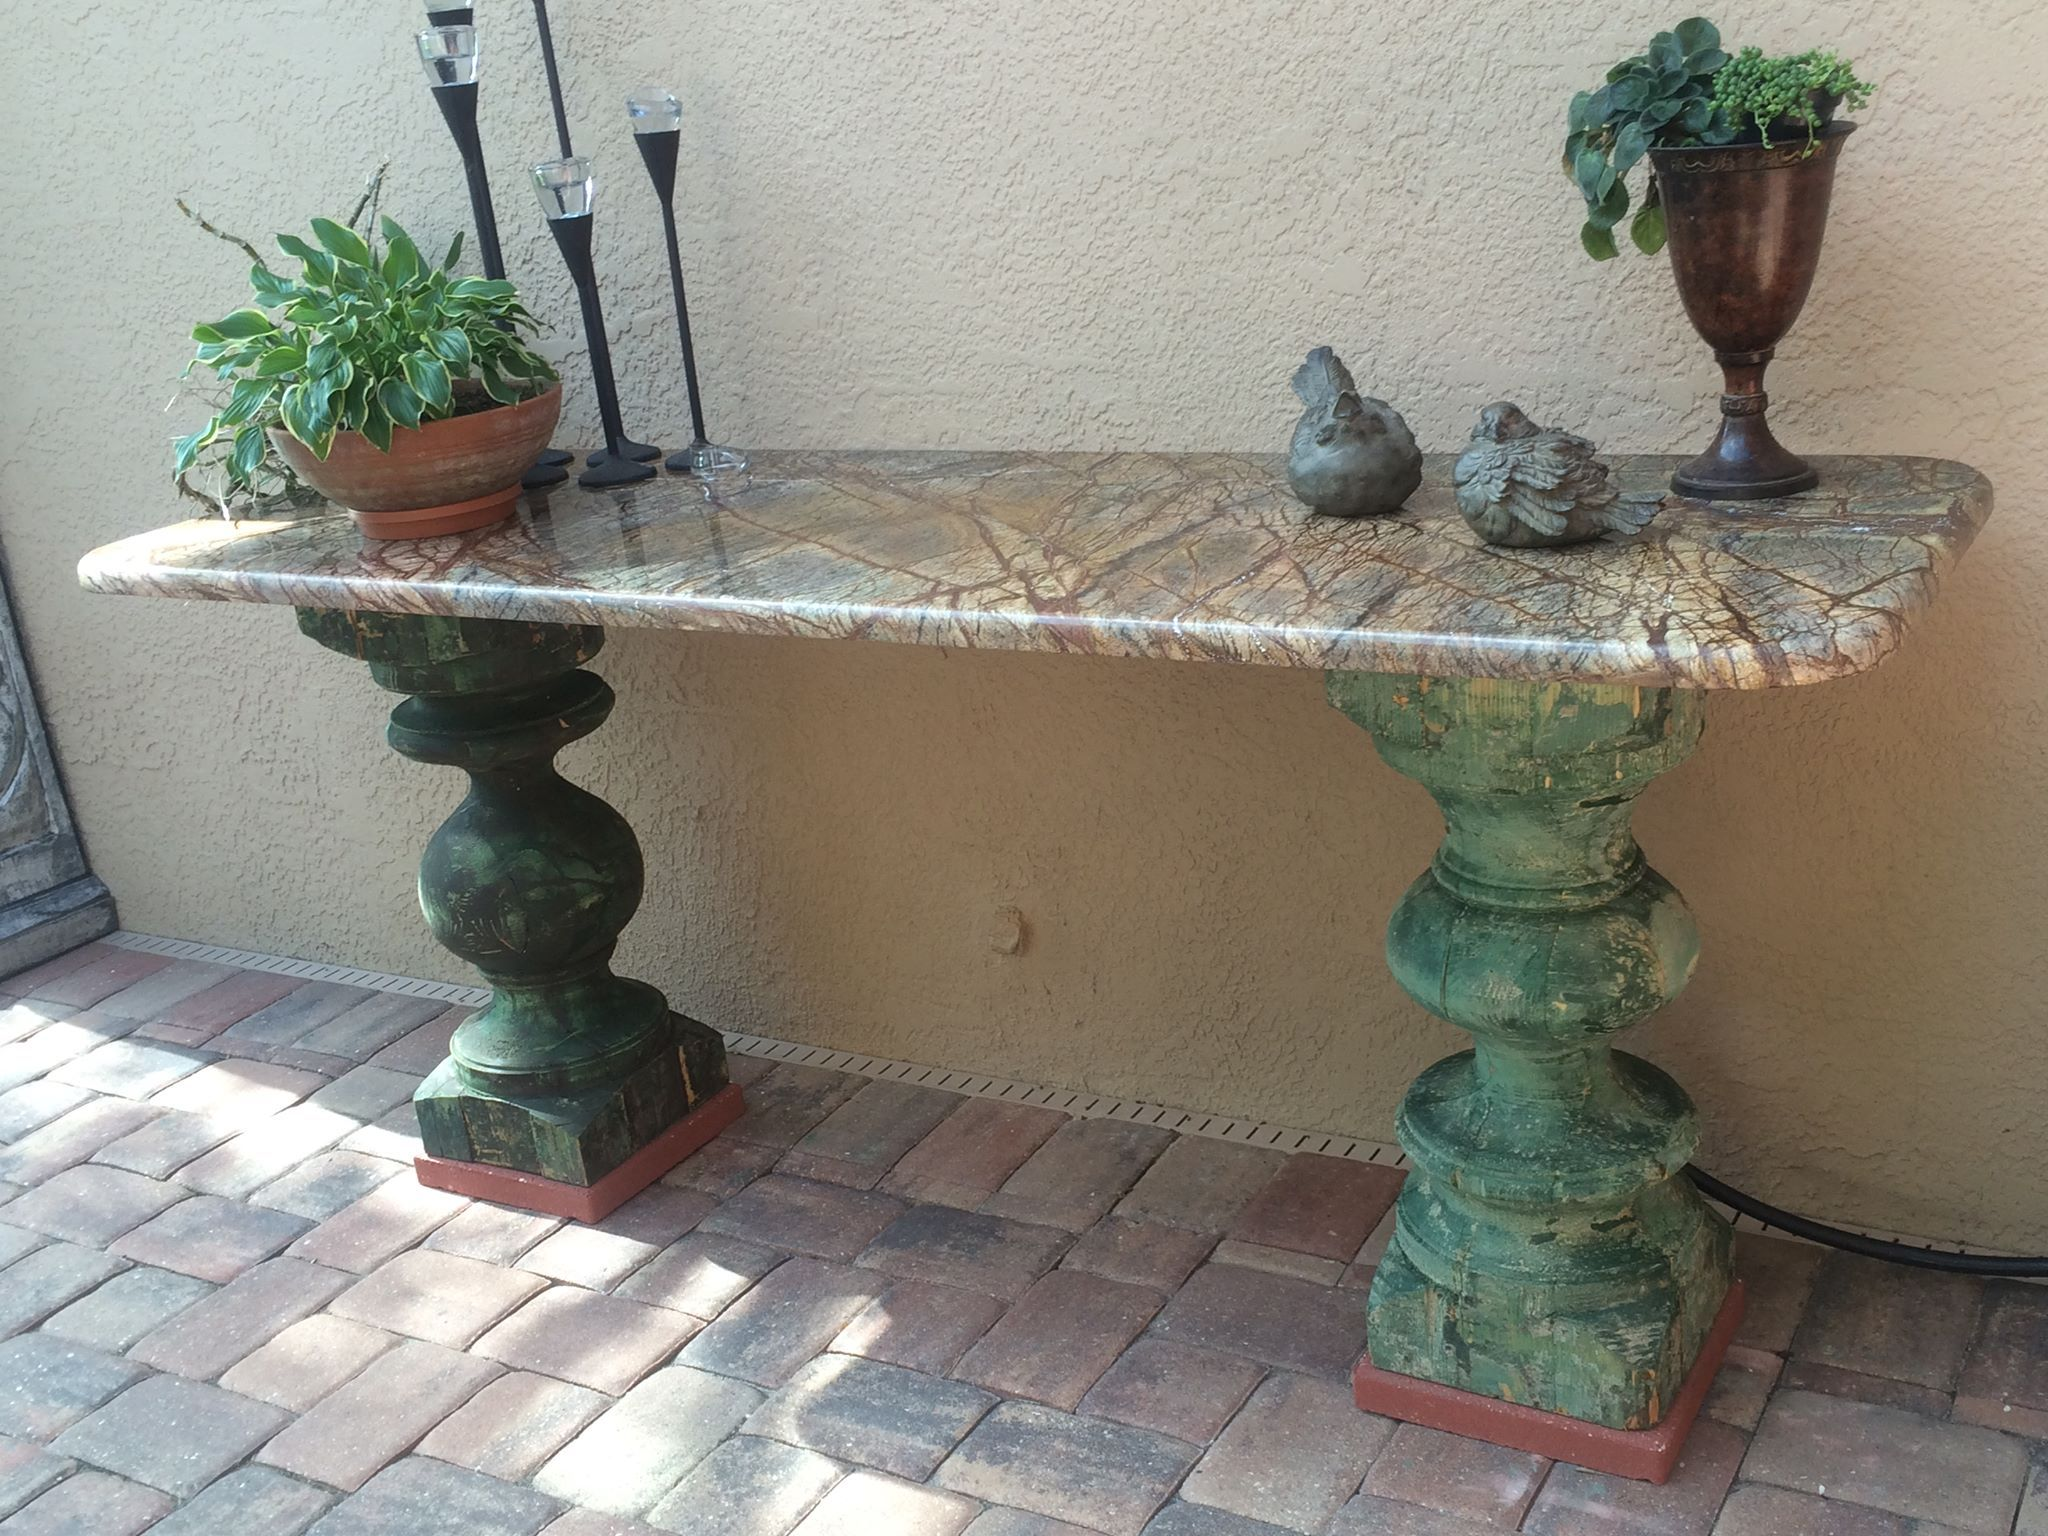 Our Outdoor Buffet Table Made With Forest Green Granite And Old Ballusters From Egypt Measures 76lx24wx Outdoor Buffet Diy Patio Table Outdoor Buffet Tables